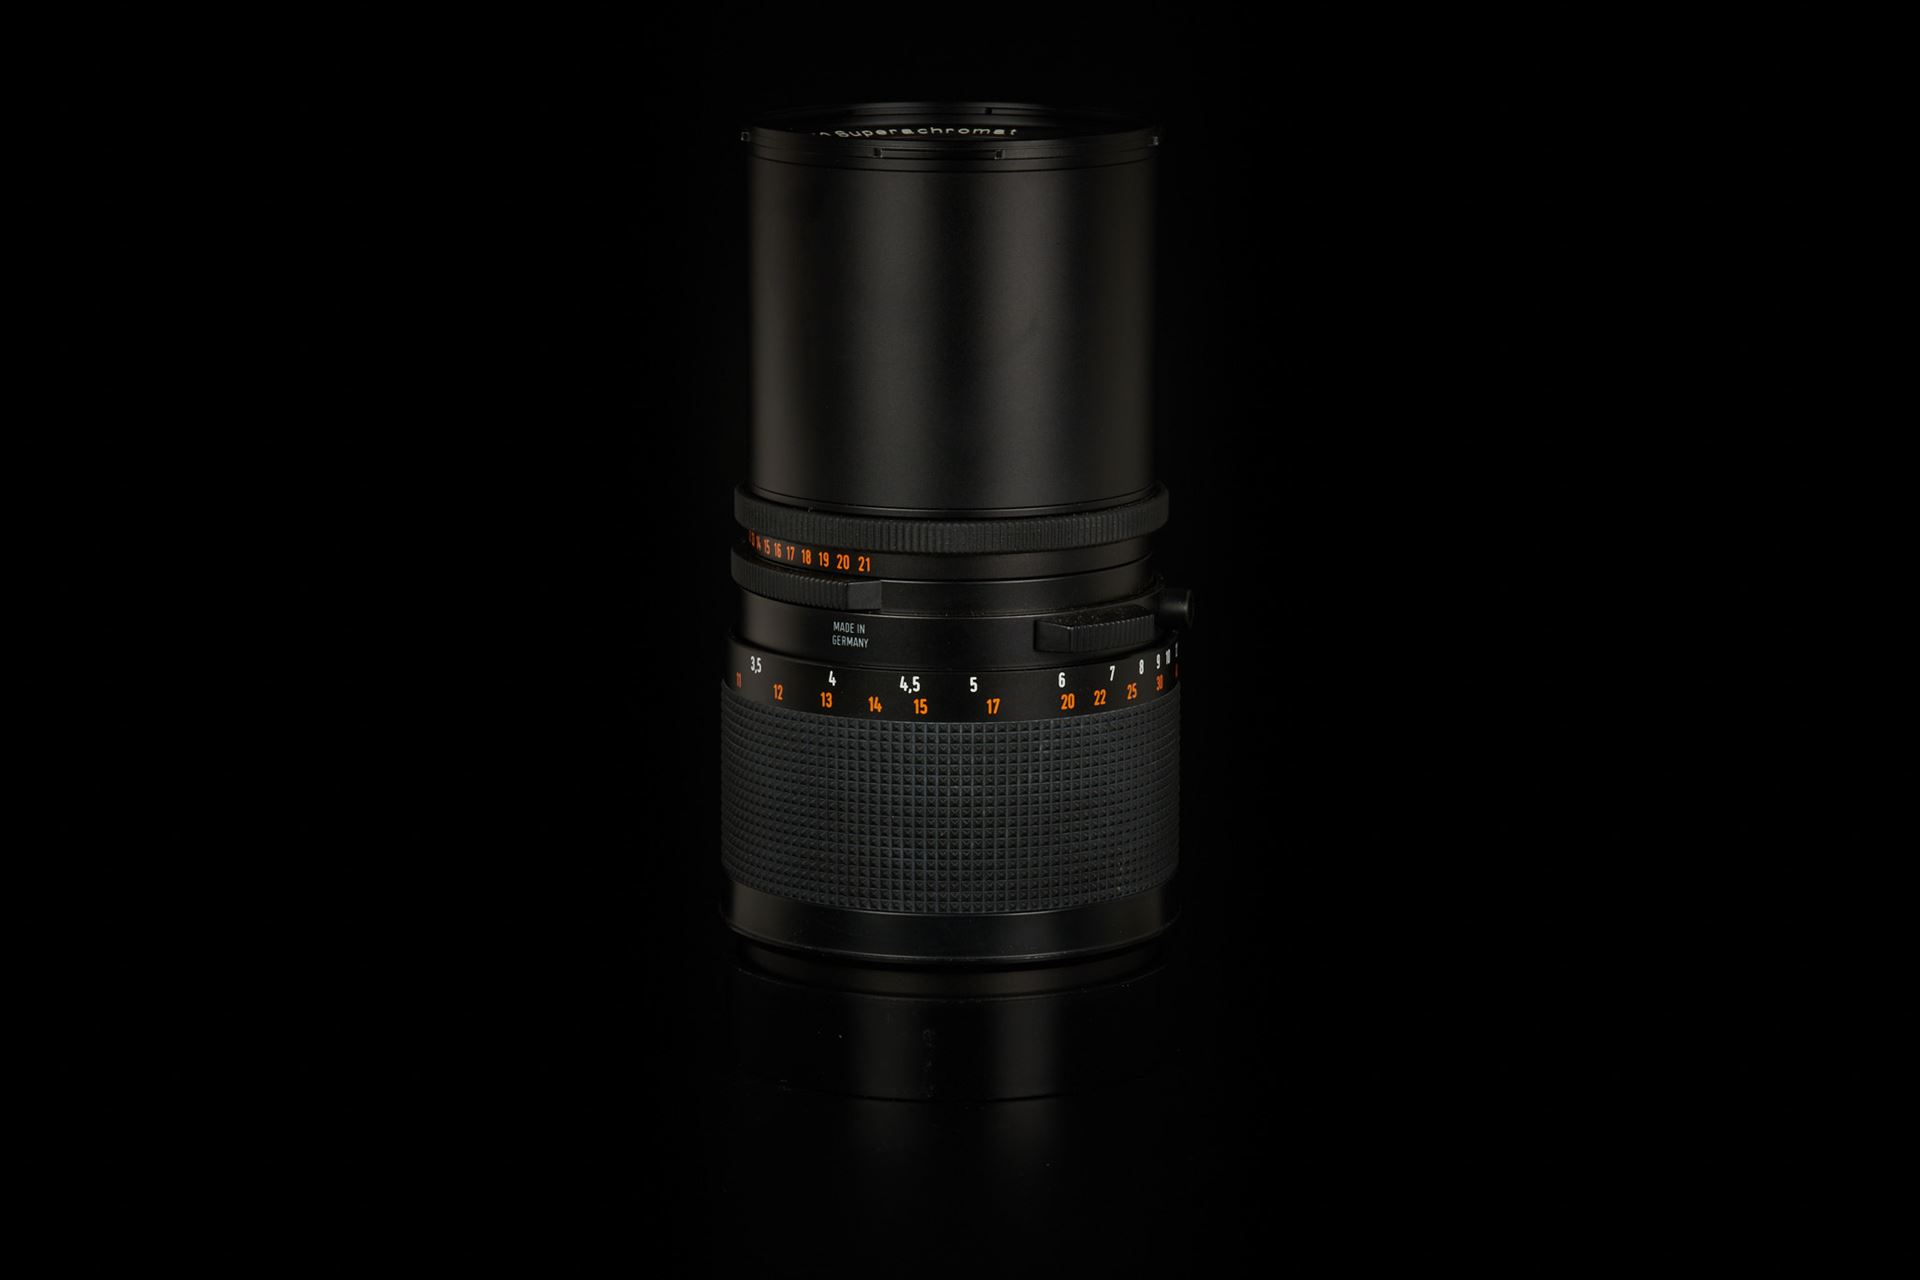 Picture of carl zeiss f. hasselblad sonnar superachromat cf 250mm f/5.6